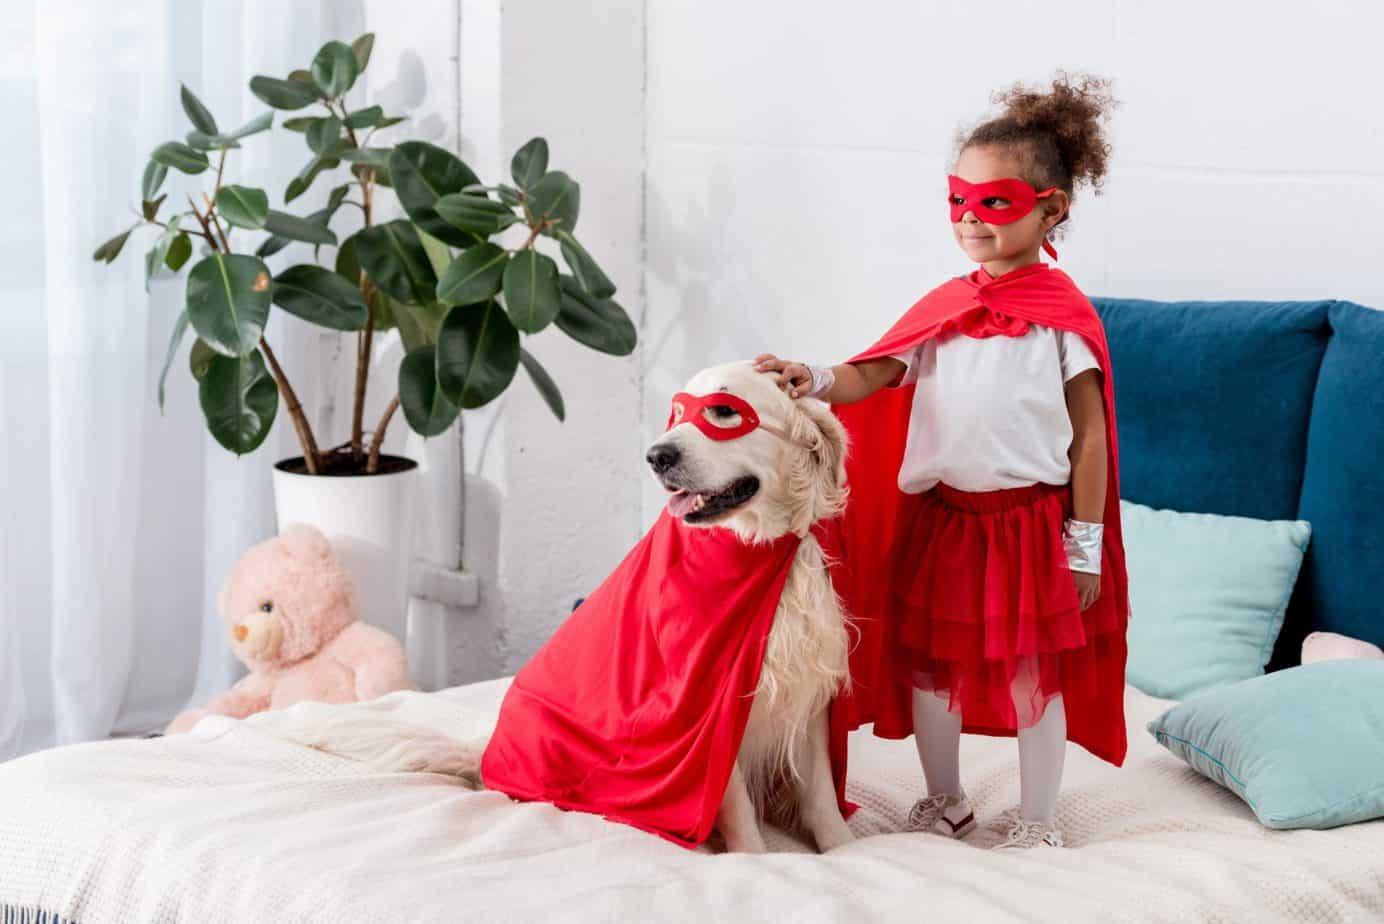 Little girl and her golden retriever dress like super heroes. Dogs teach kids valuable life lessons including responsibility, socialization, love, and friendship, and the importance of exercise.